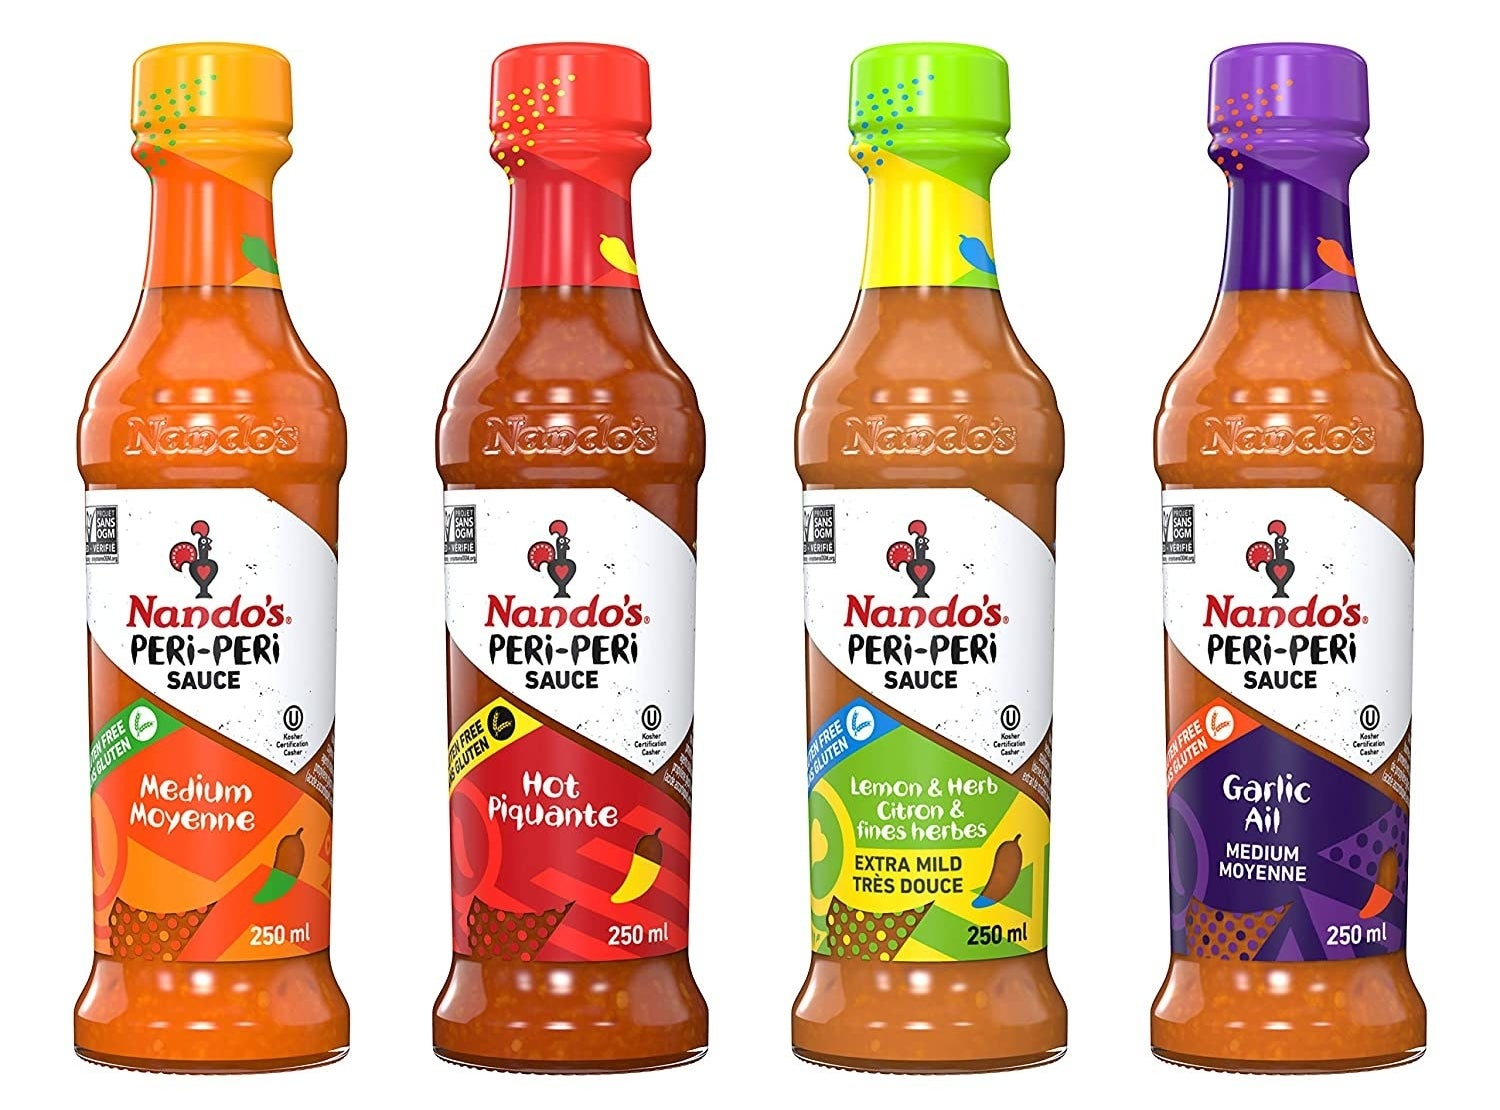 The four bottles of the PERi PERi Artisan Hot Sauce Variety Pack